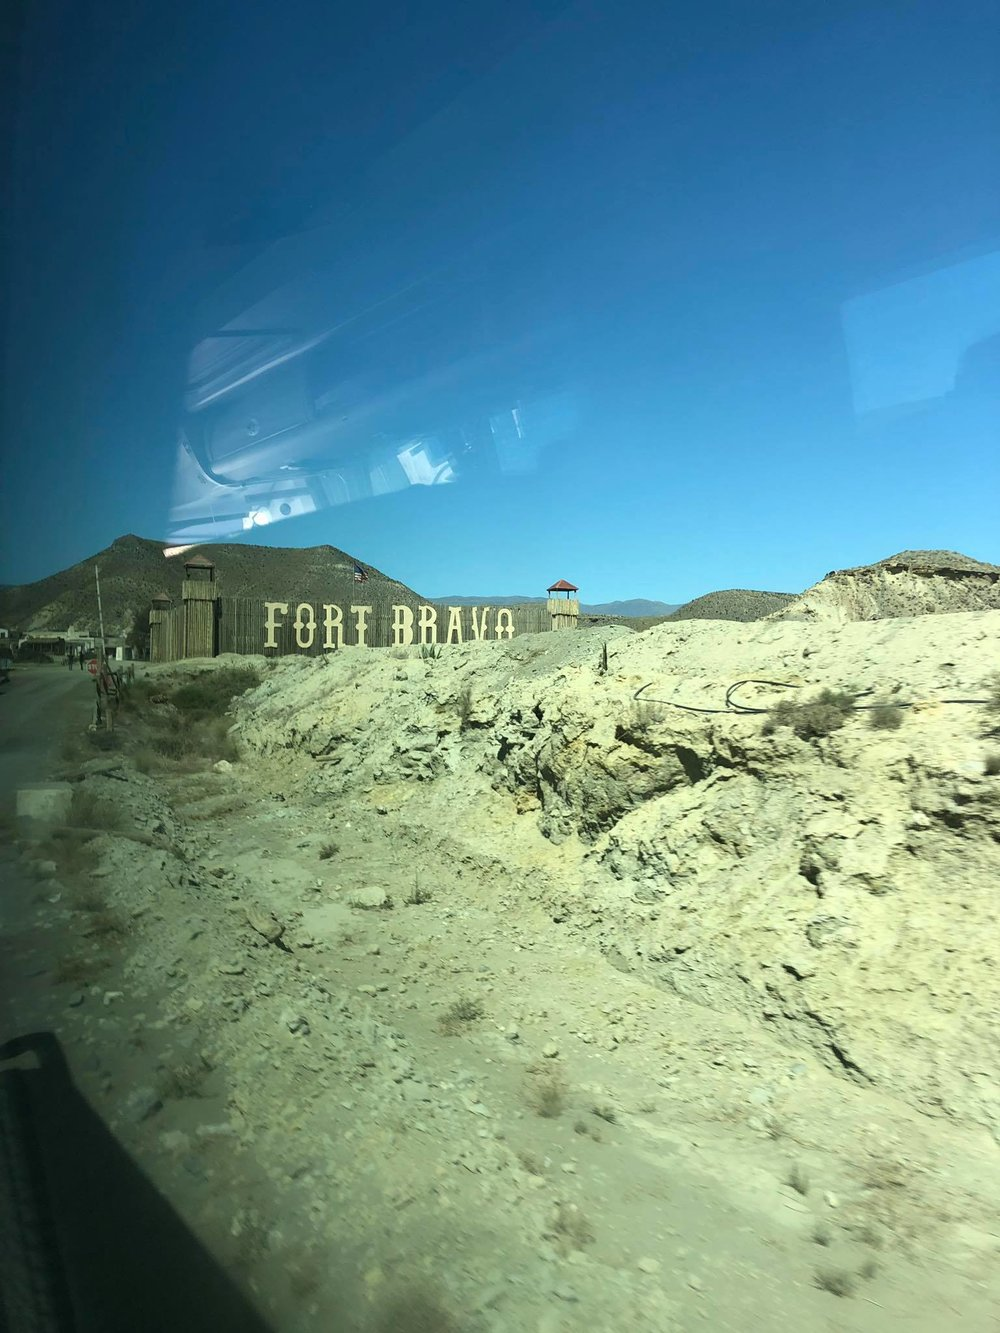 Kach Solo Travels in 2019 Full and fun itinerary here in Almeria, South of Spain14.jpg